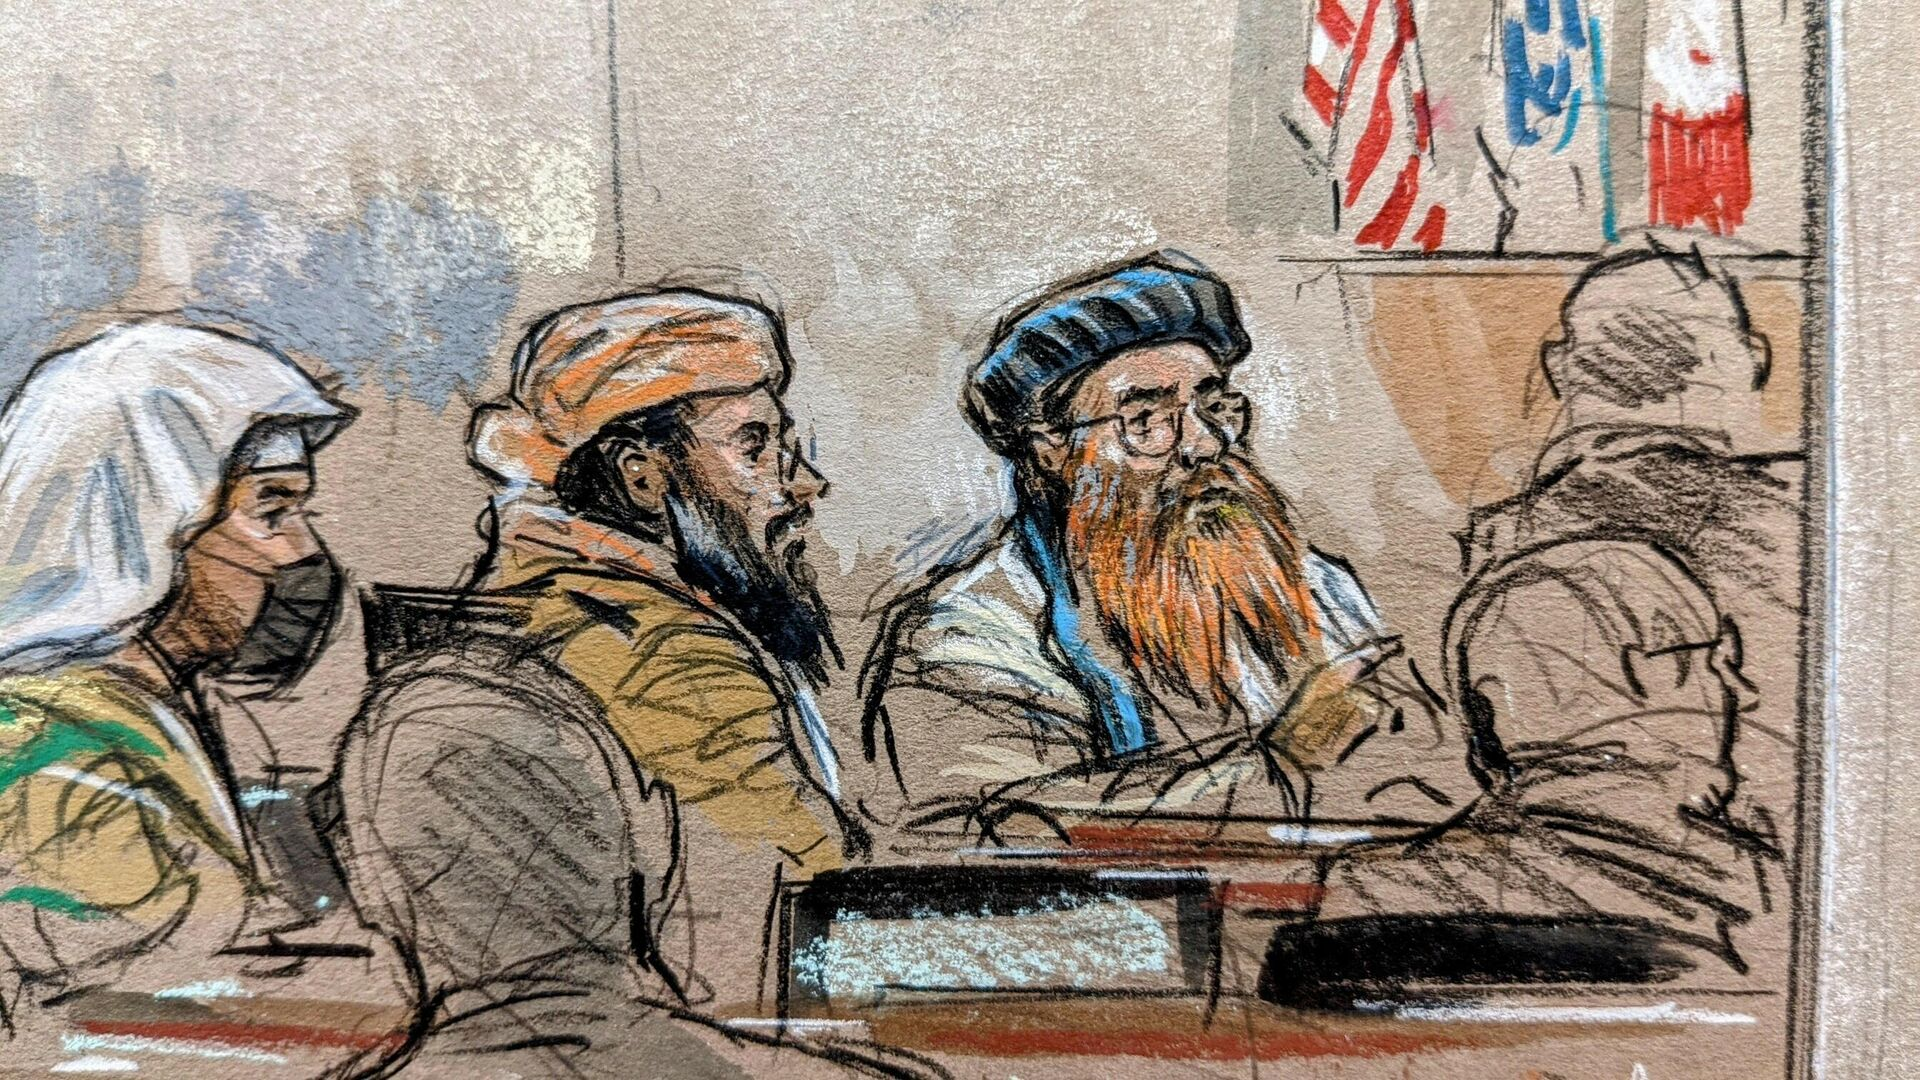 This courtroom sketch screened by US Military officials on September 7, 2021 shows accused September 11, 2001 mastermind Khalid Sheikh Mohammed (R) along with co-defendants Ramzi bin al-Shibh (L) and Walid bin Attash (C) appearing for a pretrial hearing at the military commission's court at the US naval base in Guantanamo, Cuba, on September 7, 2021.  - Sputnik International, 1920, 13.09.2021